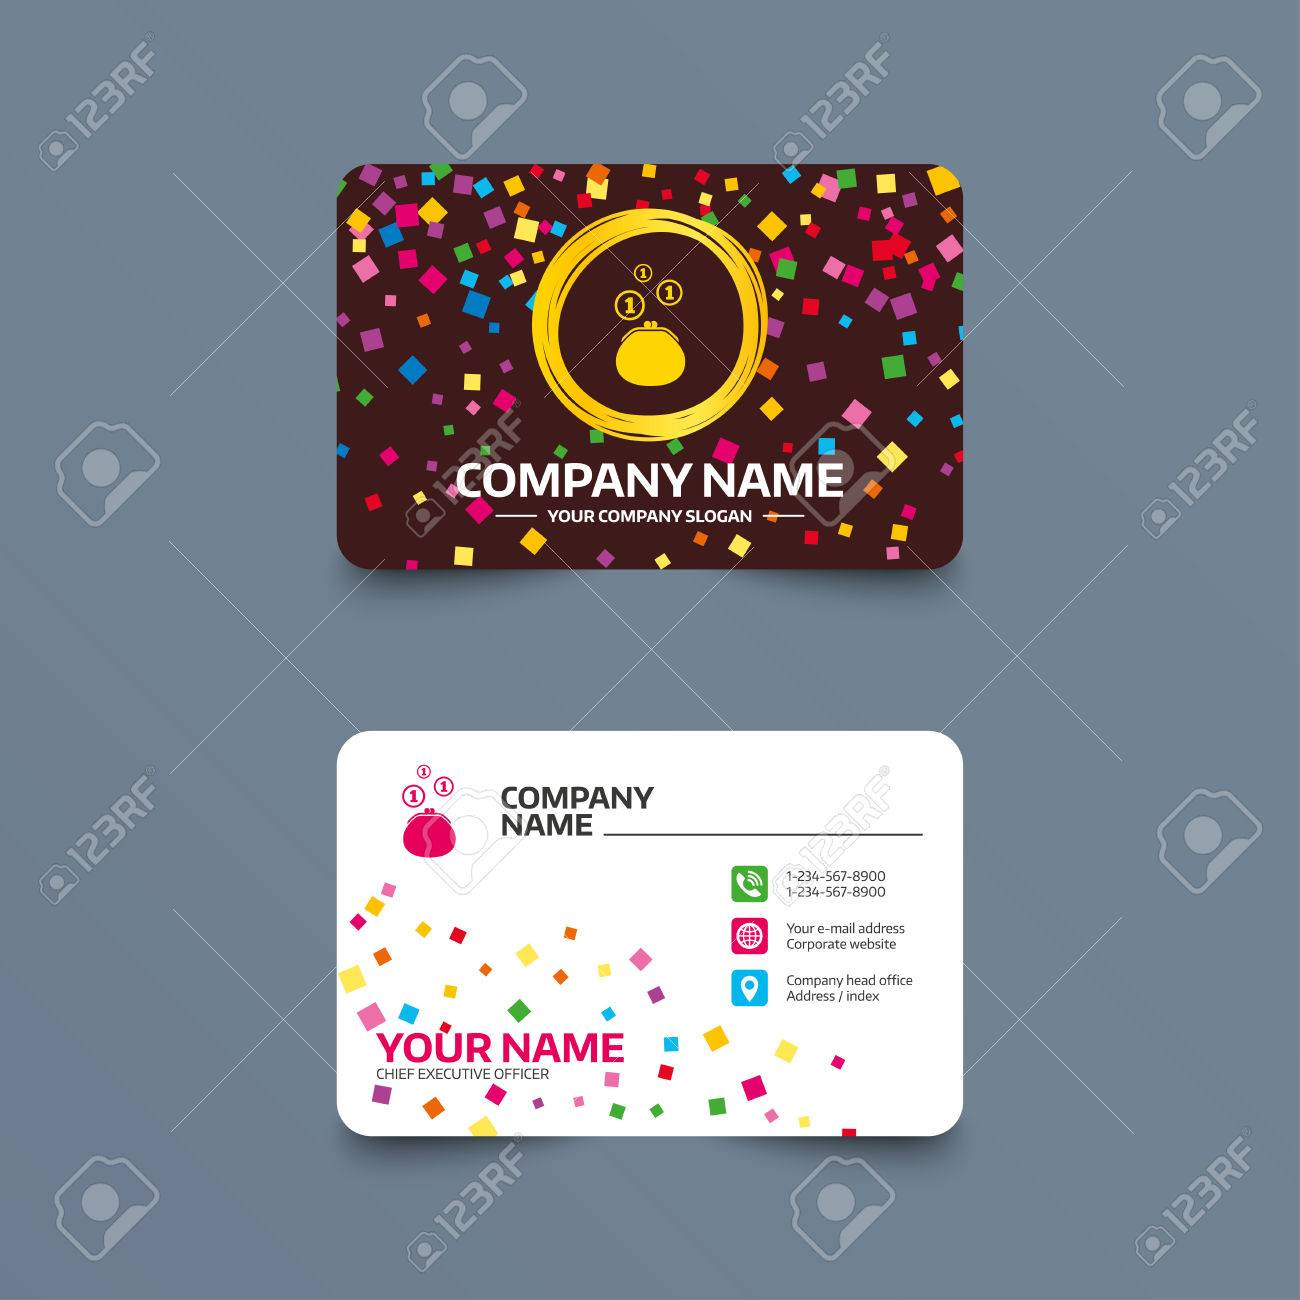 Business card template with confetti pieces wallet sign icon business card template with confetti pieces wallet sign icon cash coins bag symbol pronofoot35fo Images